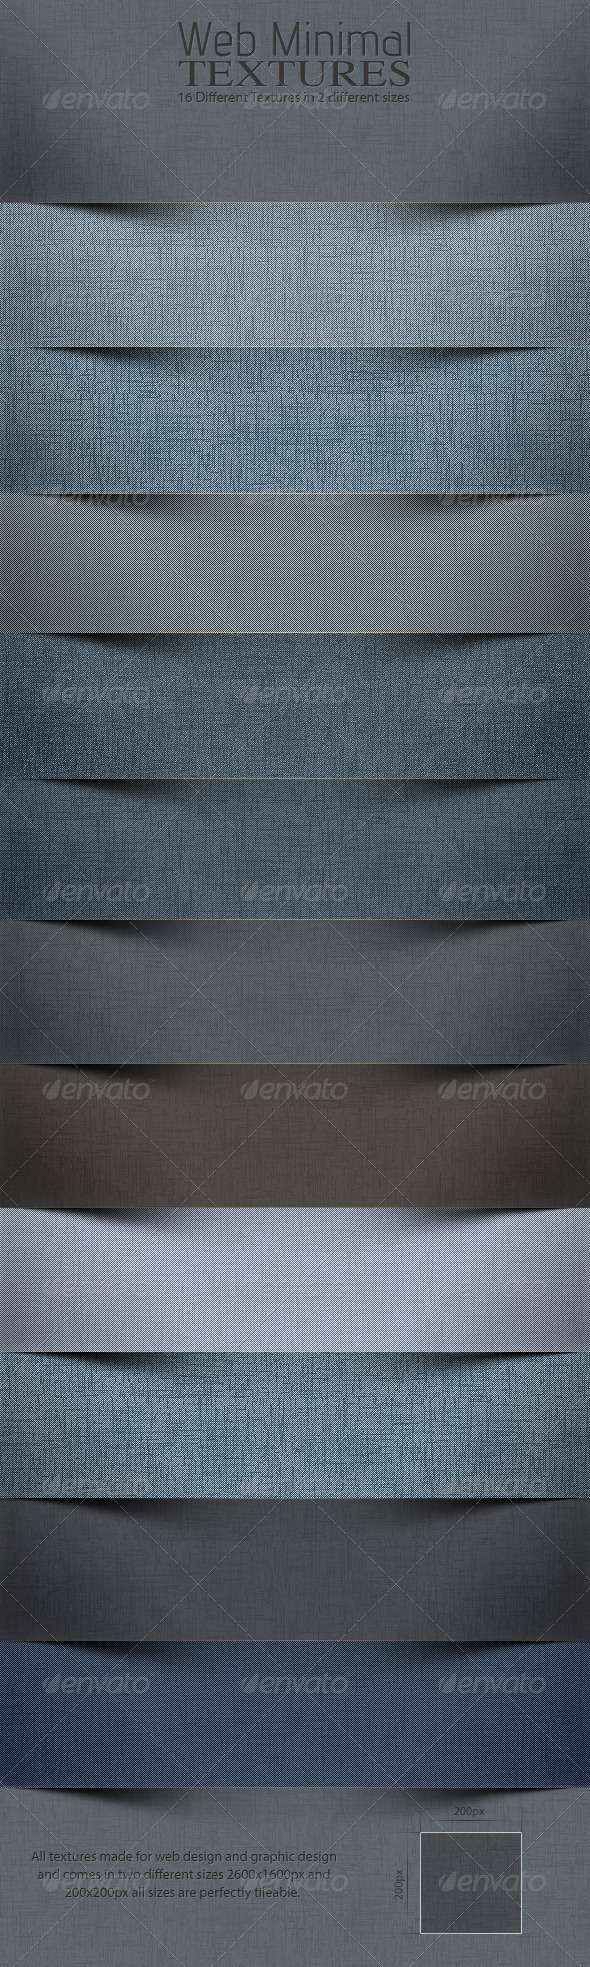 Web Minimal Textures 4.0 - Patterns Backgrounds